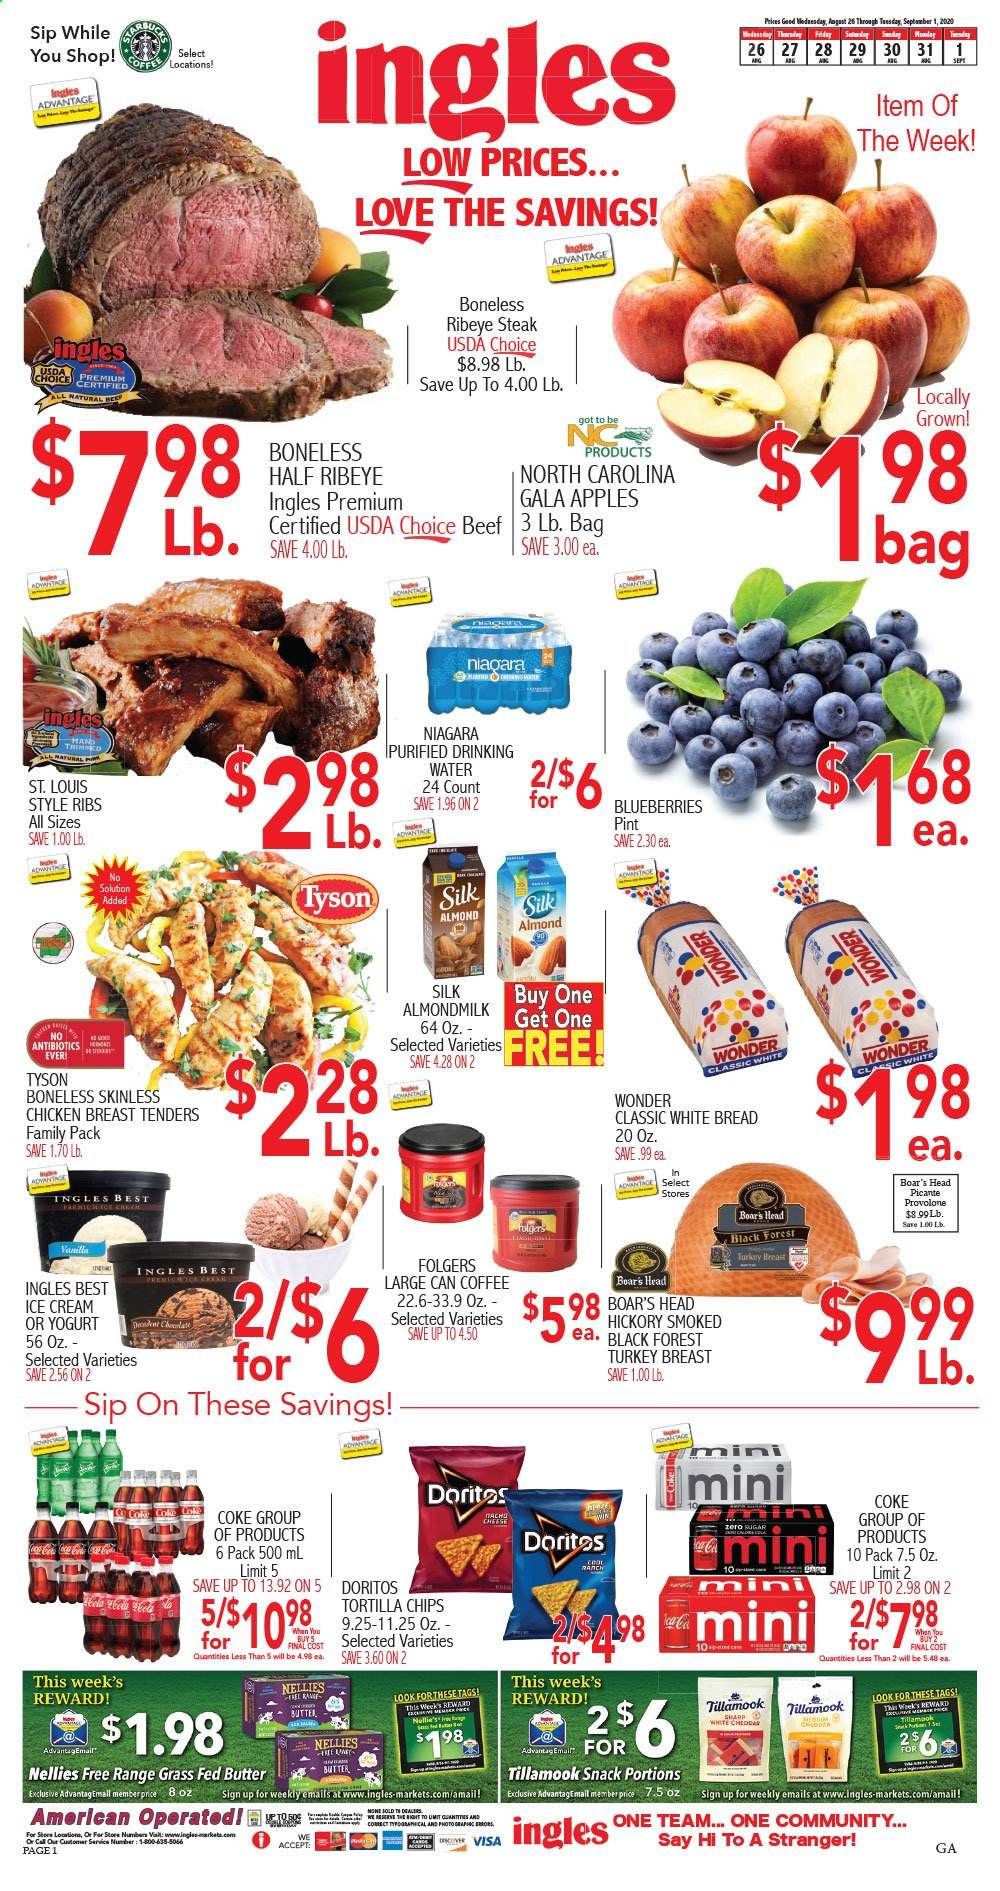 Ingles Flyer - 08.26.2020 - 09.01.2020 - Sales products - blueberries, Gala, bread, white bread, cheese, butter, ice cream, Doritos, tortilla chips, chips, snack, Coca-Cola, water, coffee, Folgers, turkey, turkey breast, chicken, chicken breast, beef meat, steak, ribs. Page 1.